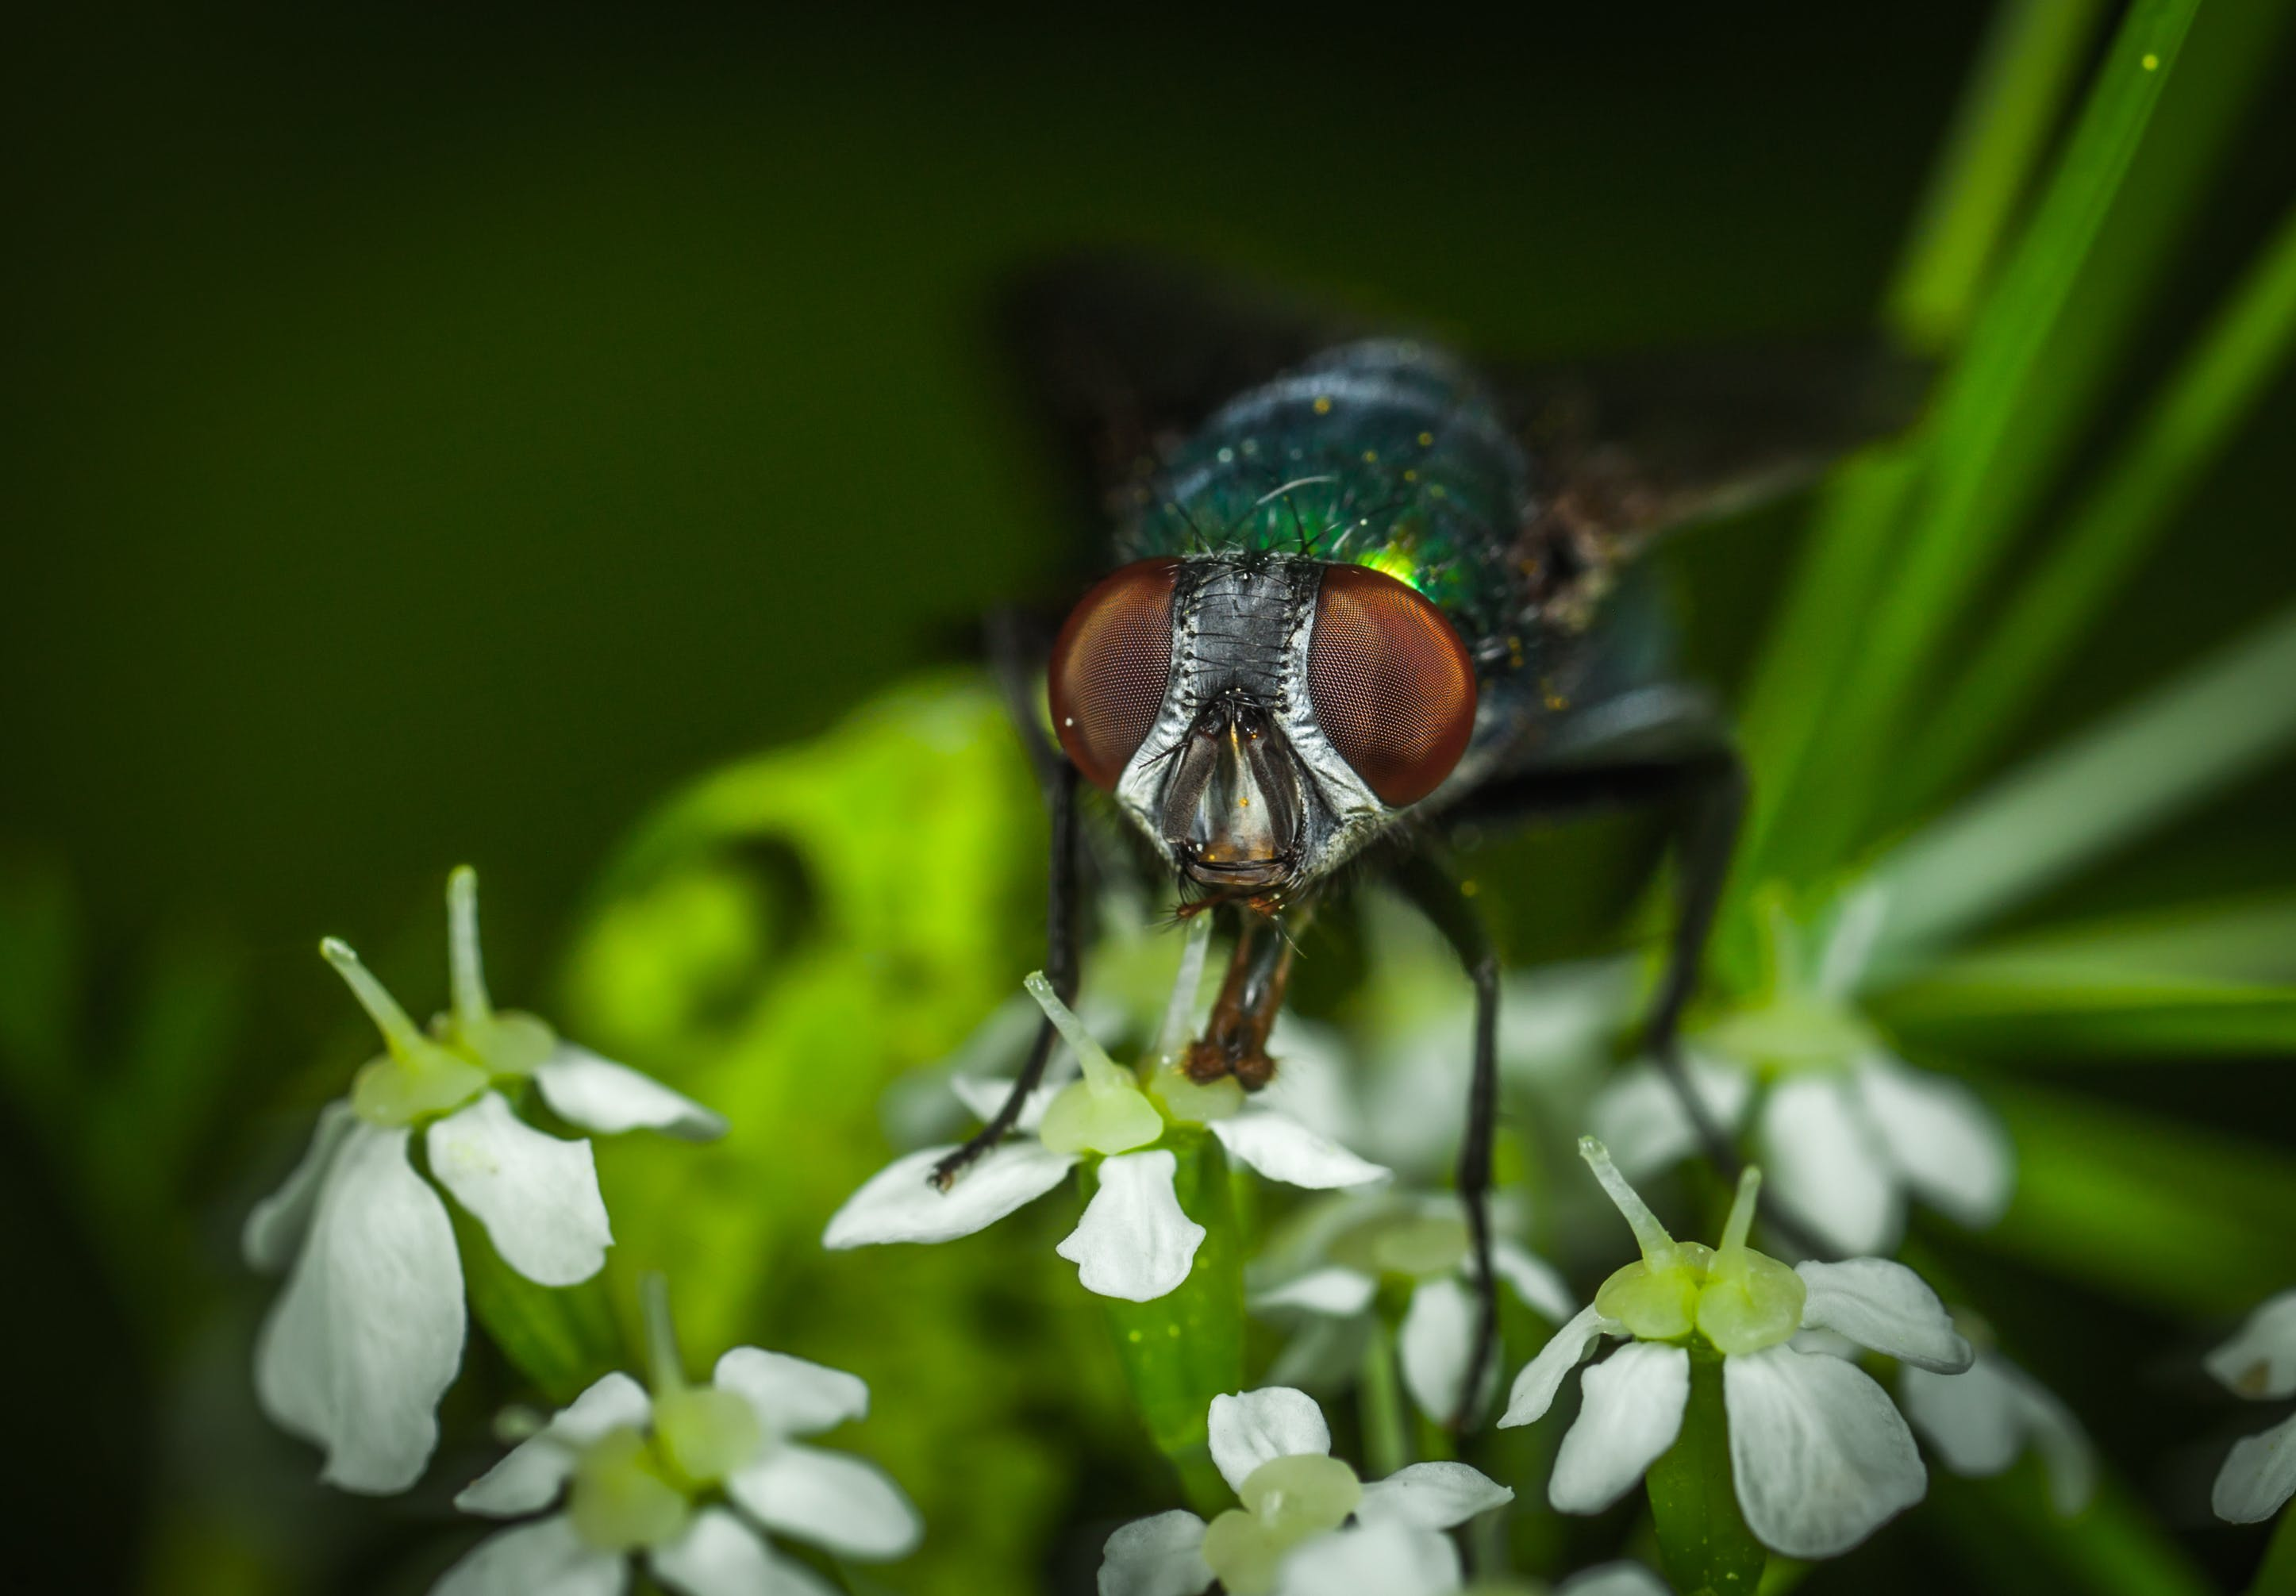 Focus Photography of Green Bottle Fly